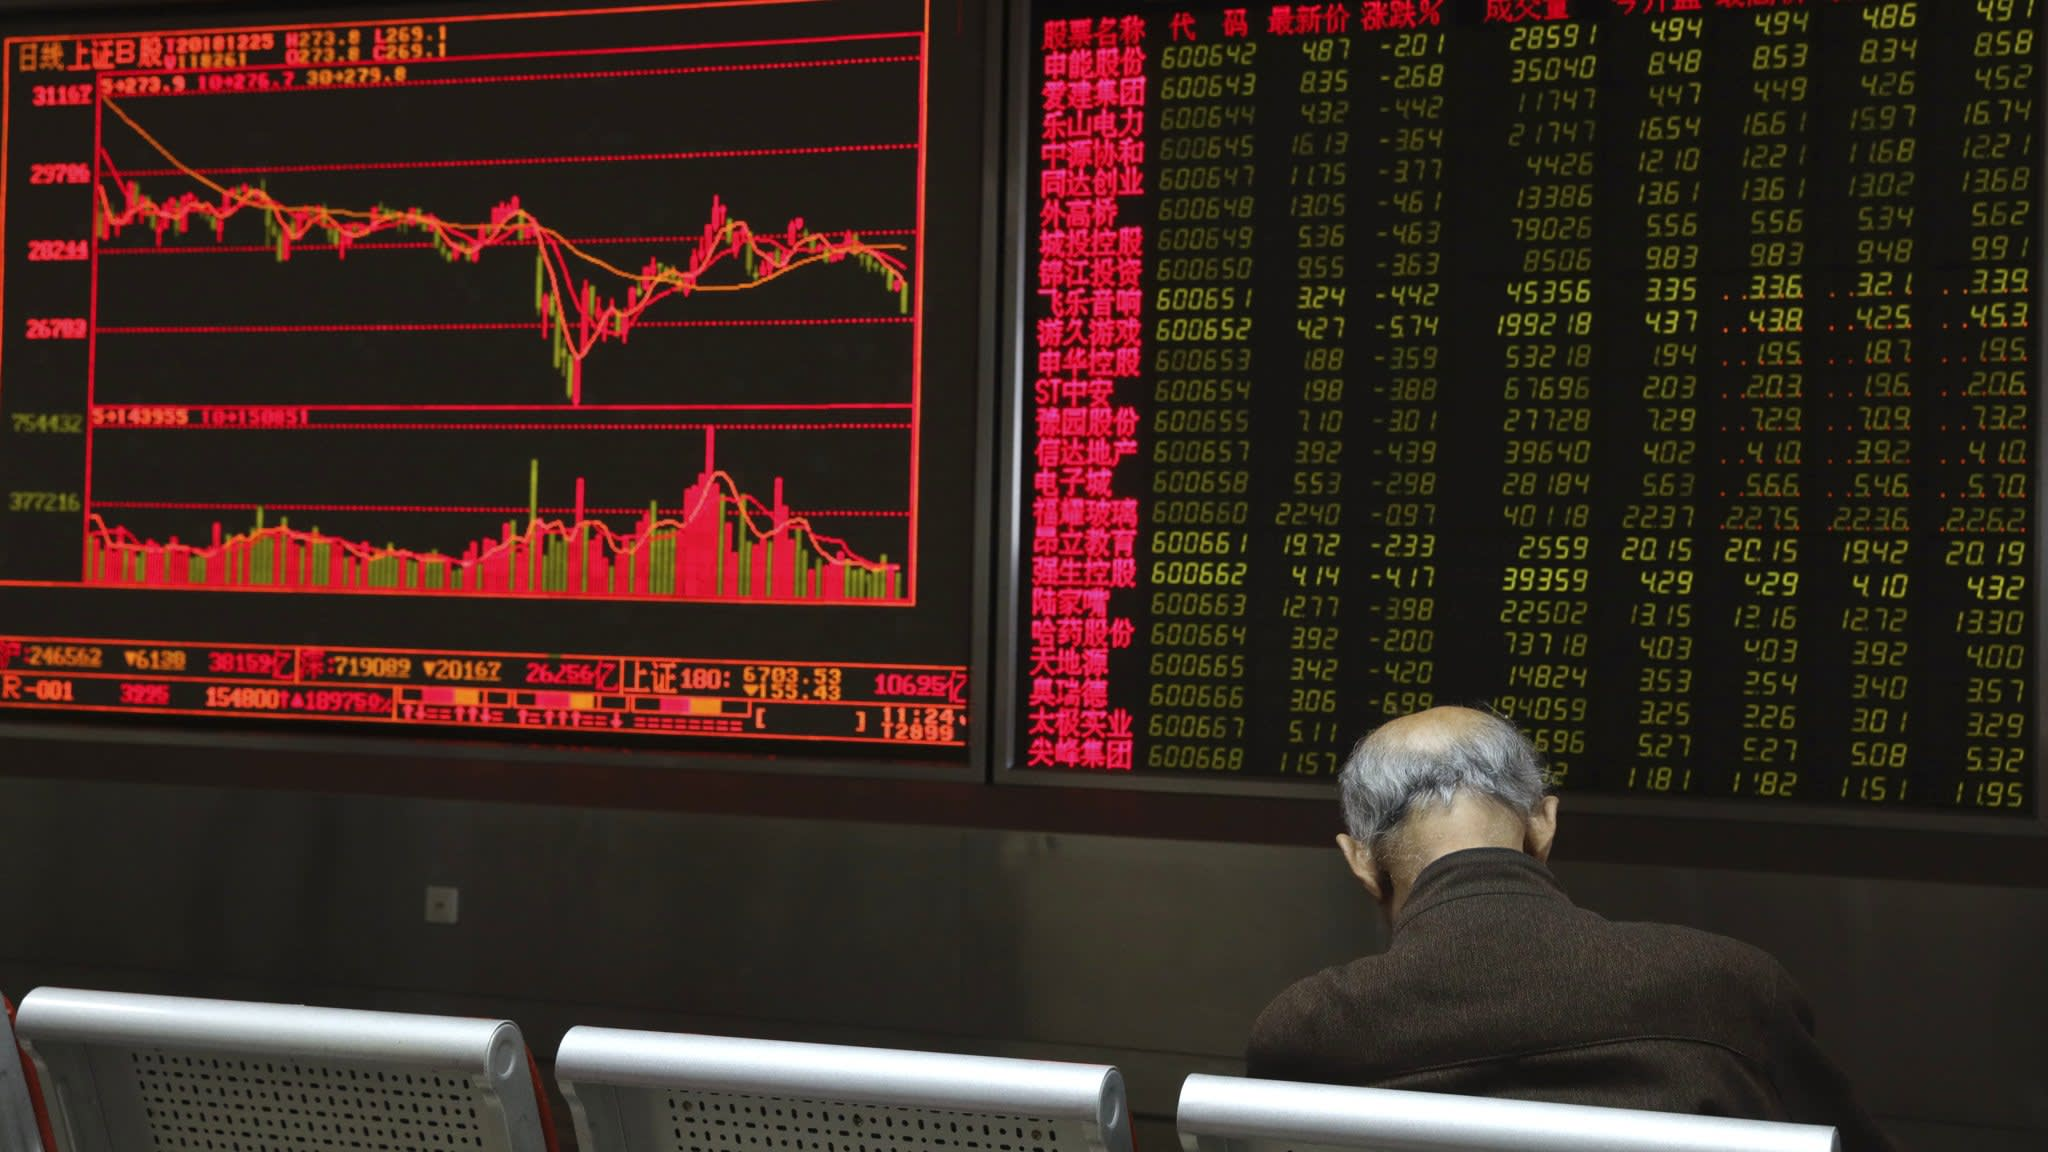 China stocks slide on IPO announcements and real estate warning | Financial Times